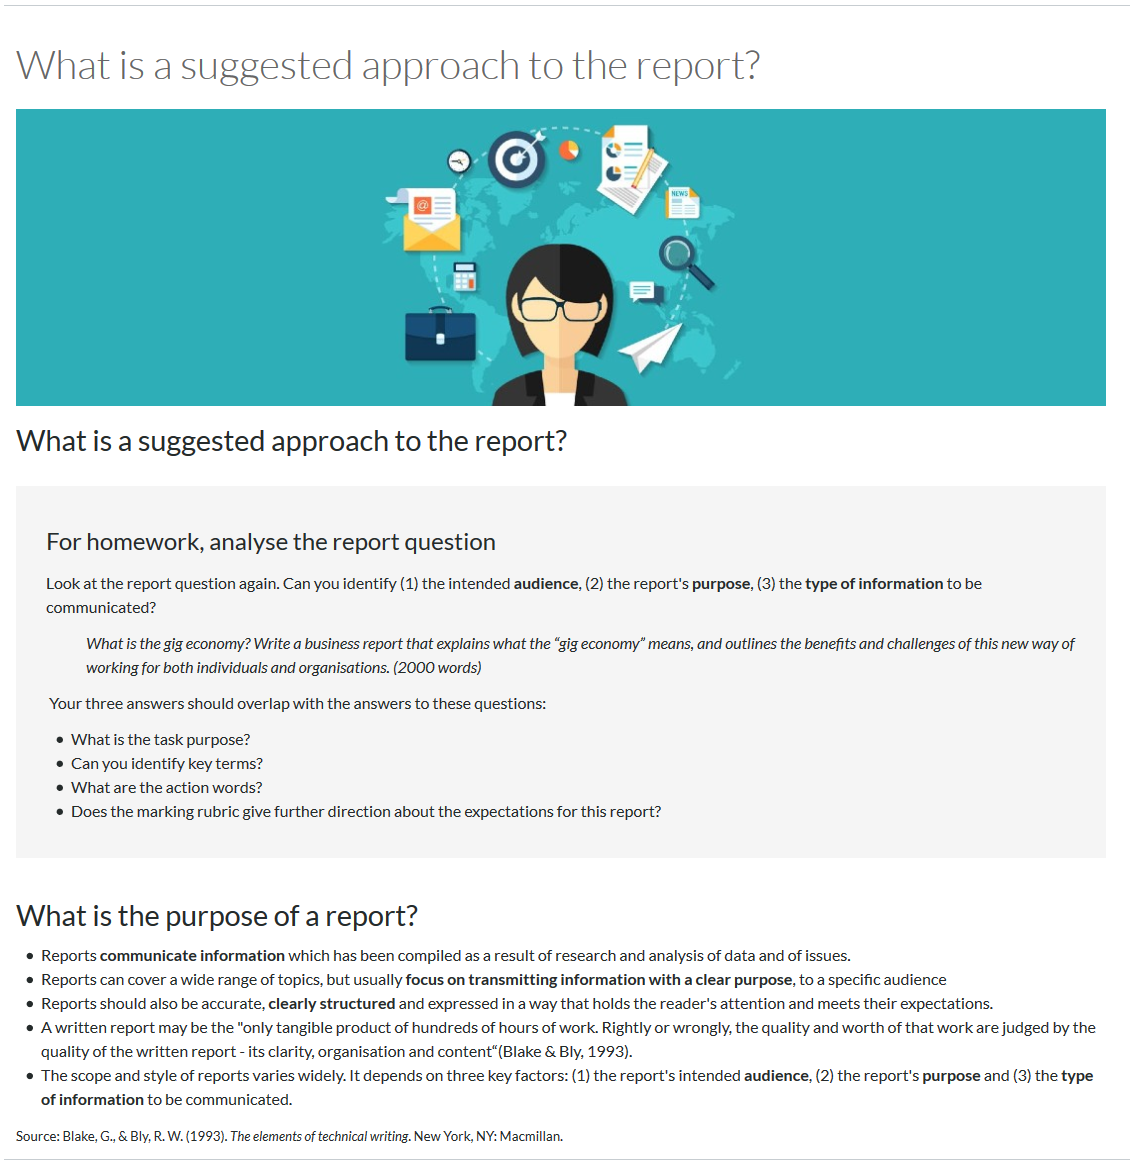 A page example guiding students the suggested approach to an assigned report assessment. This is broken down by the page being sectioned by how to analyse the report question, and the purpose of a report.